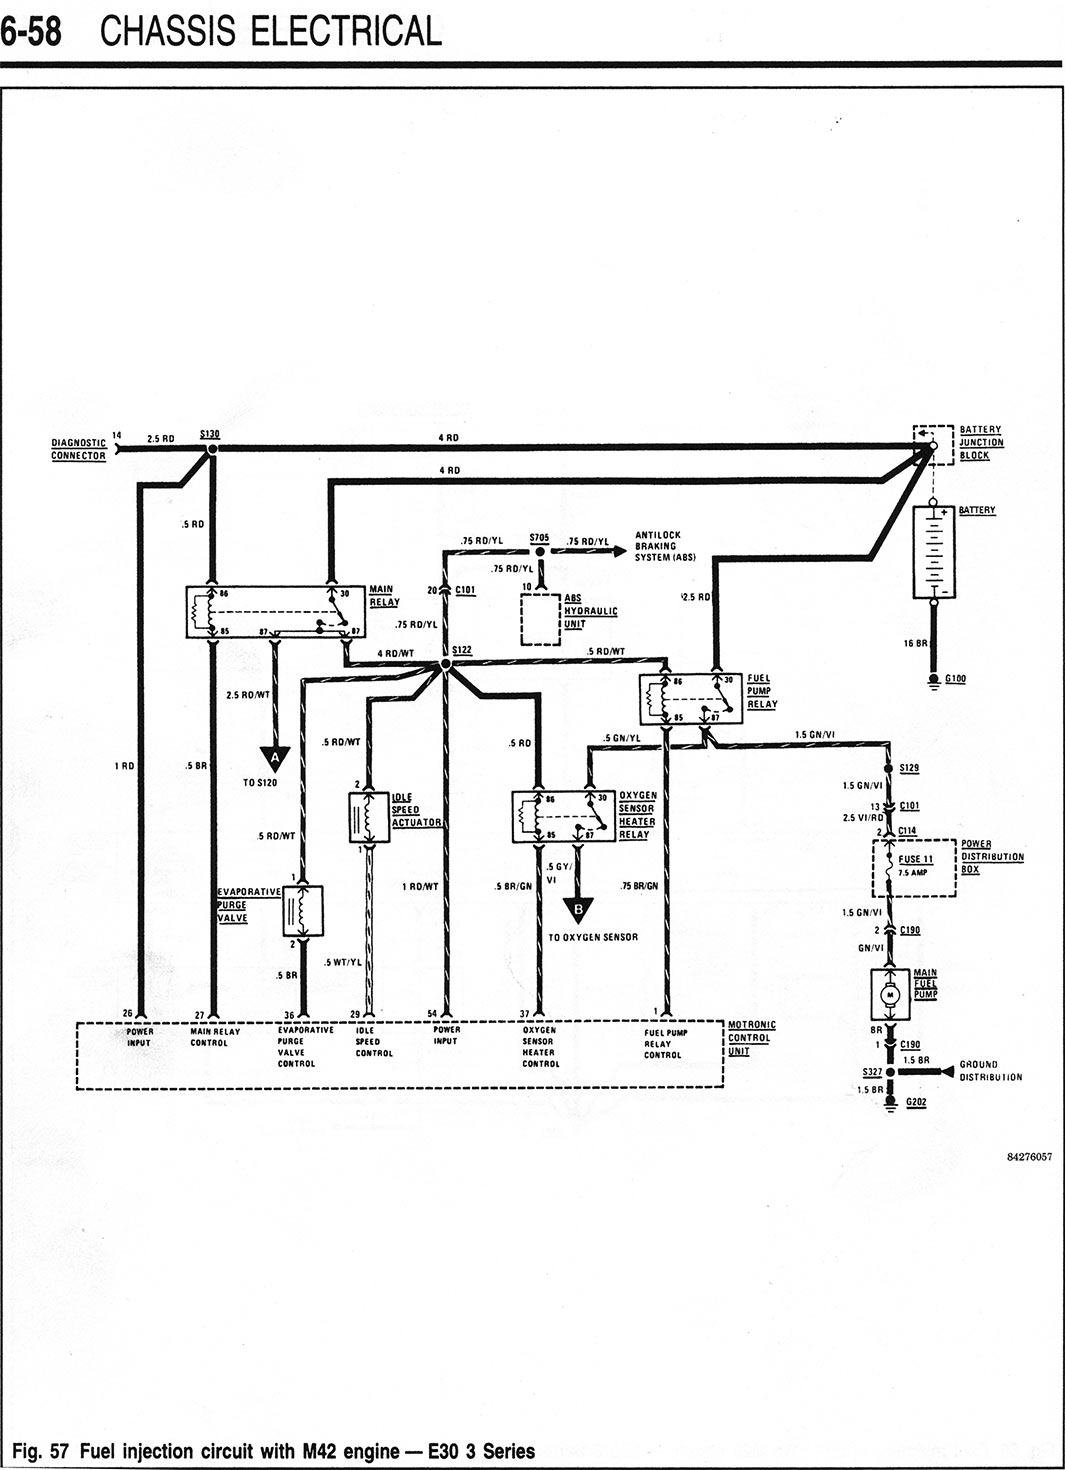 PG658 e30 wiring diagram e30 amplifier wiring diagram \u2022 wiring diagrams 2003 bmw e46 wiring diagram at readyjetset.co